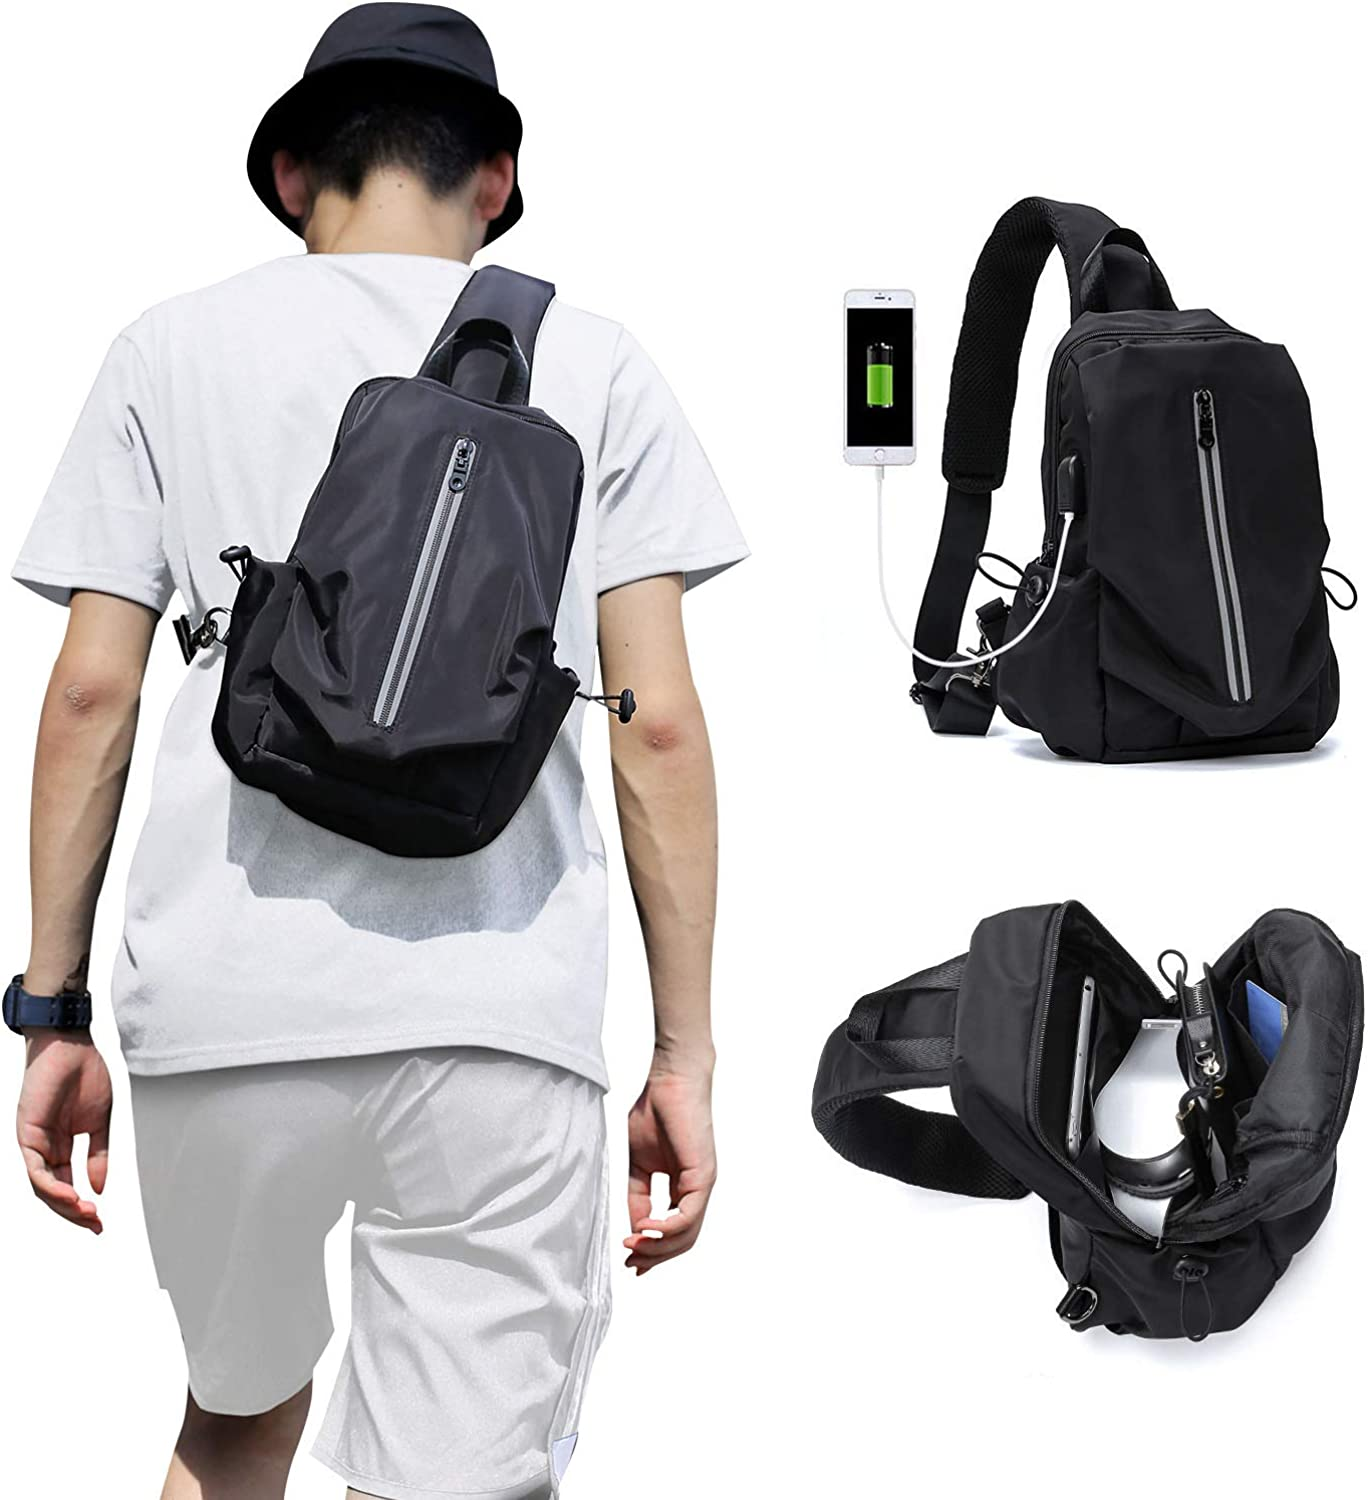 Small Sling Backpack Bag, One Strap Backpack Cross Body Bag For Men Women, One Shoulder Backpack For Hiking Cycling Walking Travel Work Gym Camping Usb Charger Port – Nylon